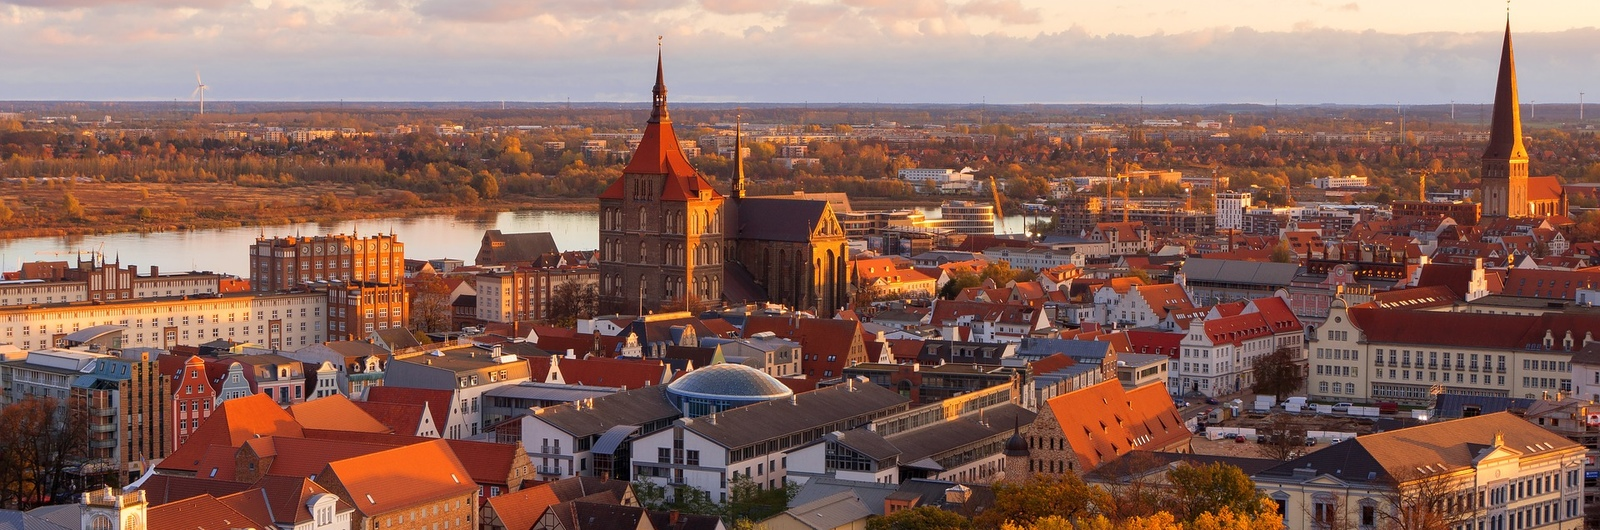 rostock city header